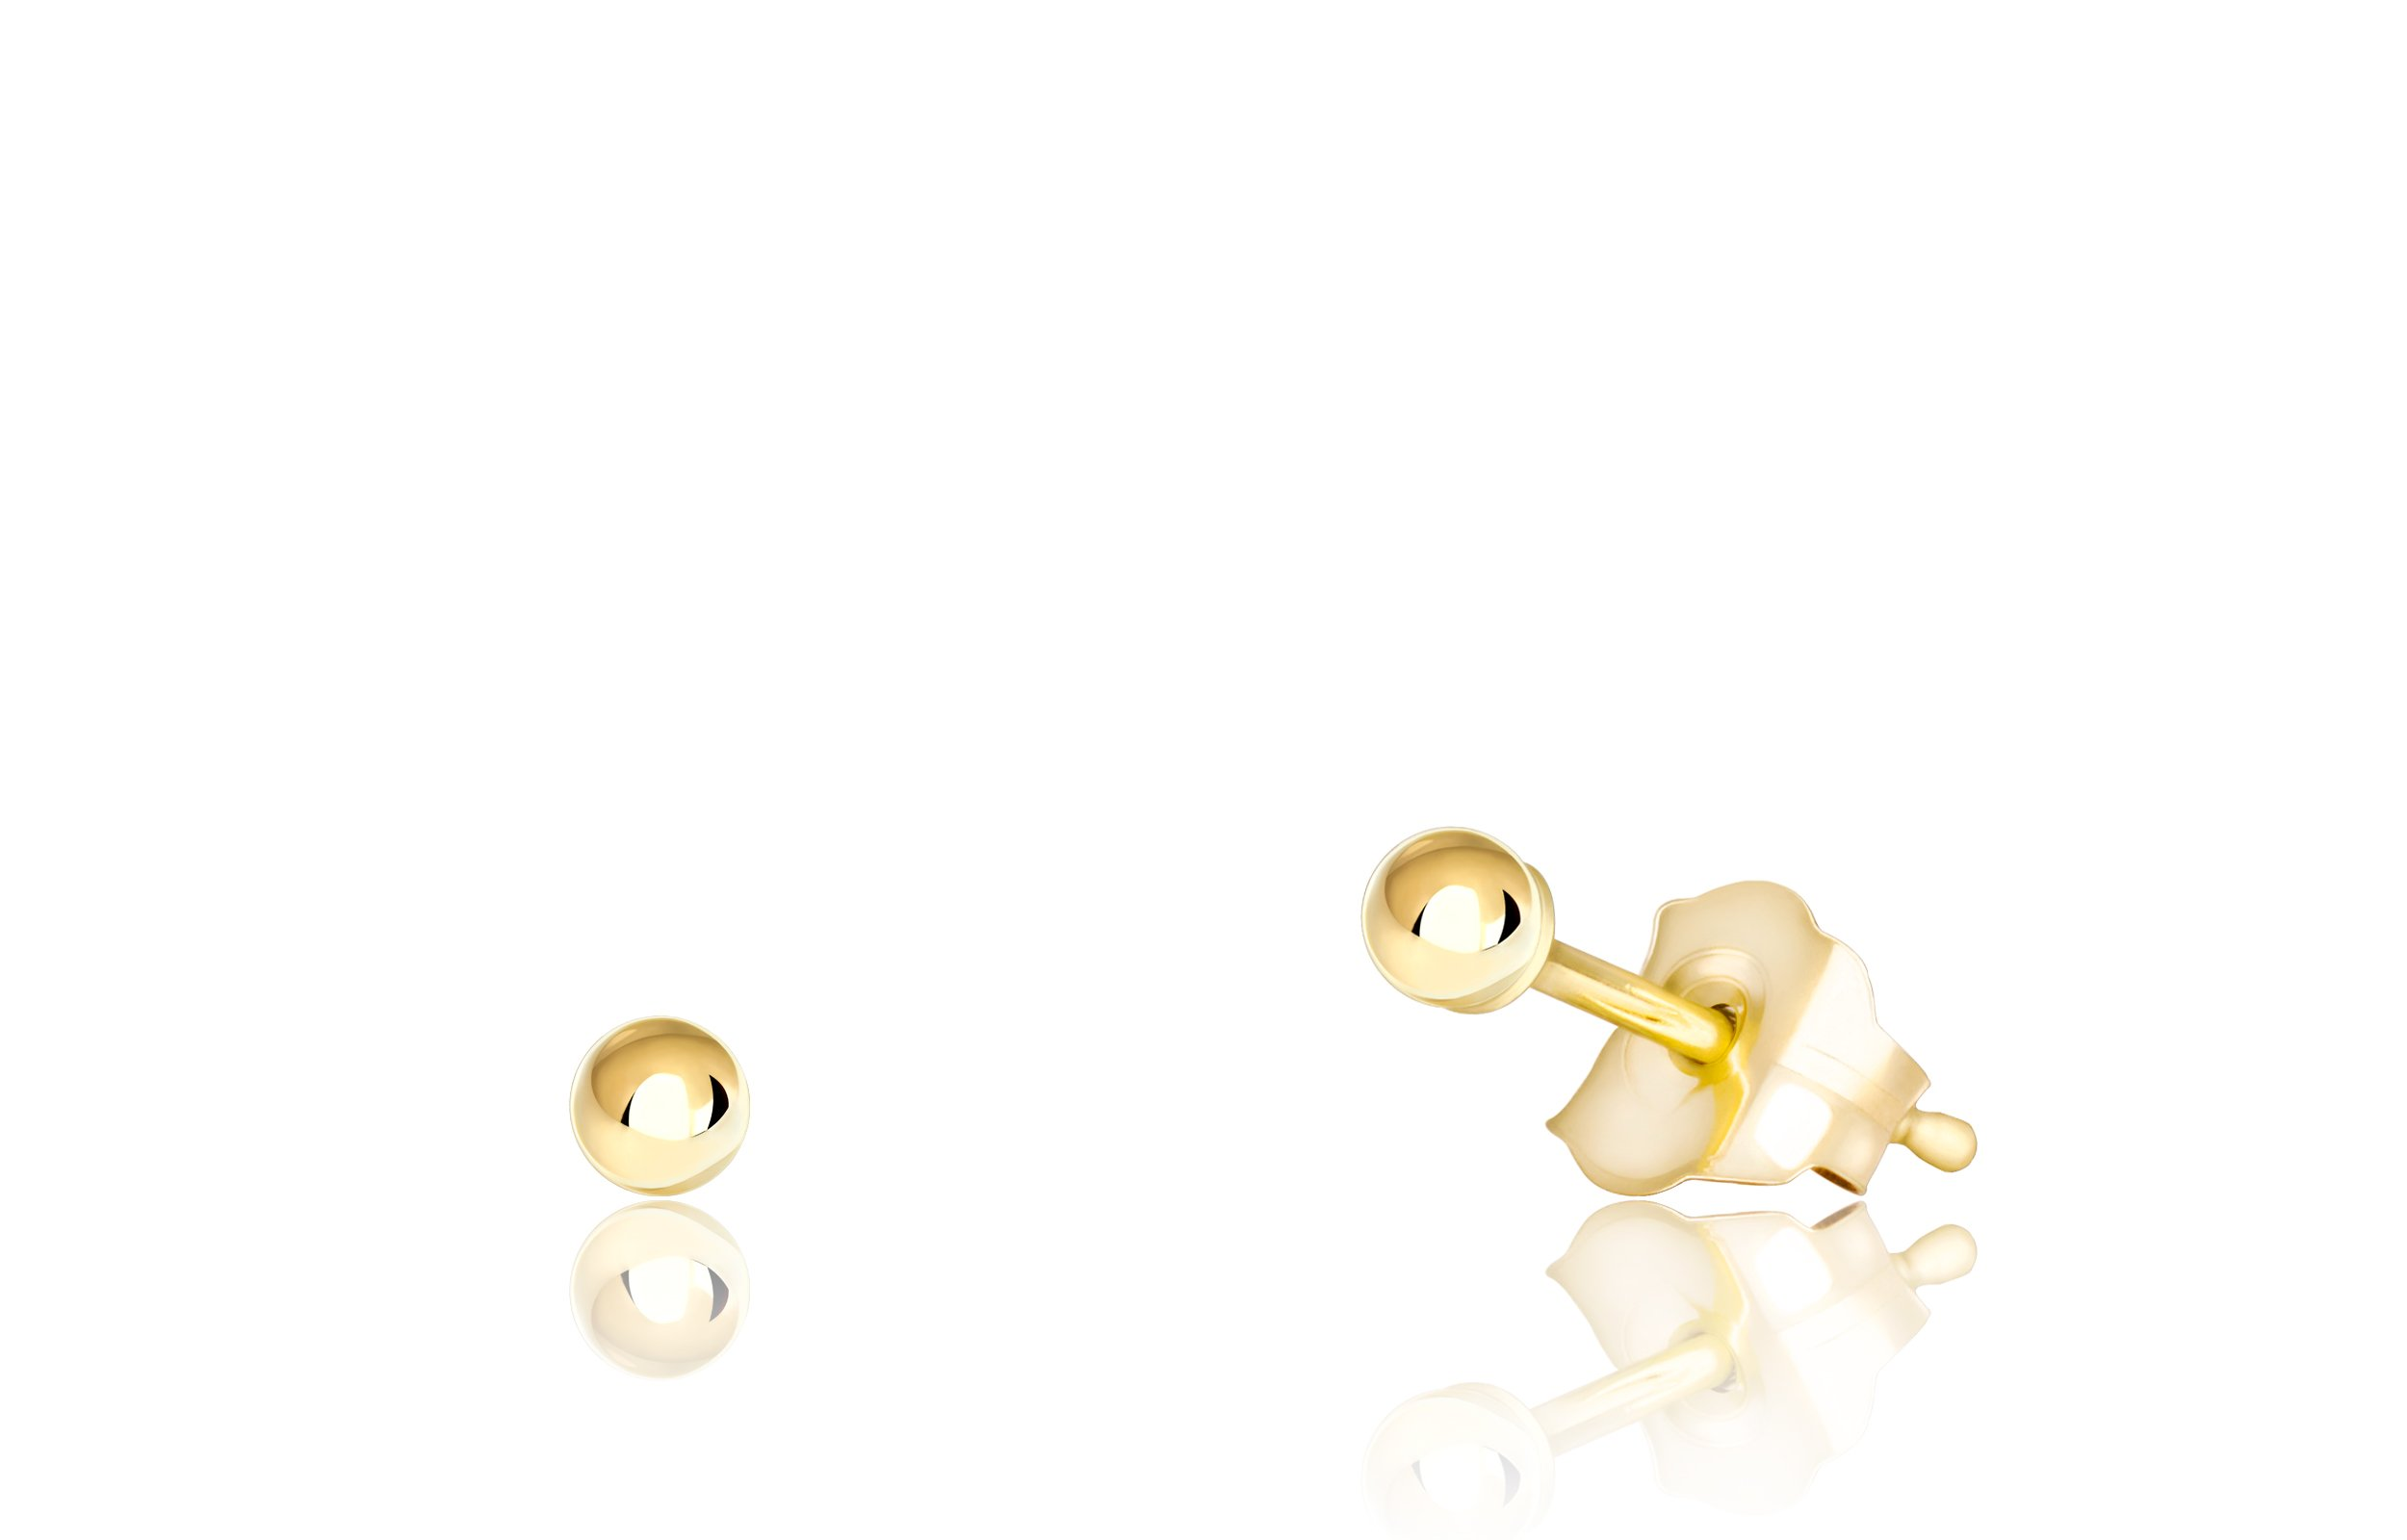 Premium 14K Yellow Gold Ball Stud Earrings (2mm - Yellow Gold)